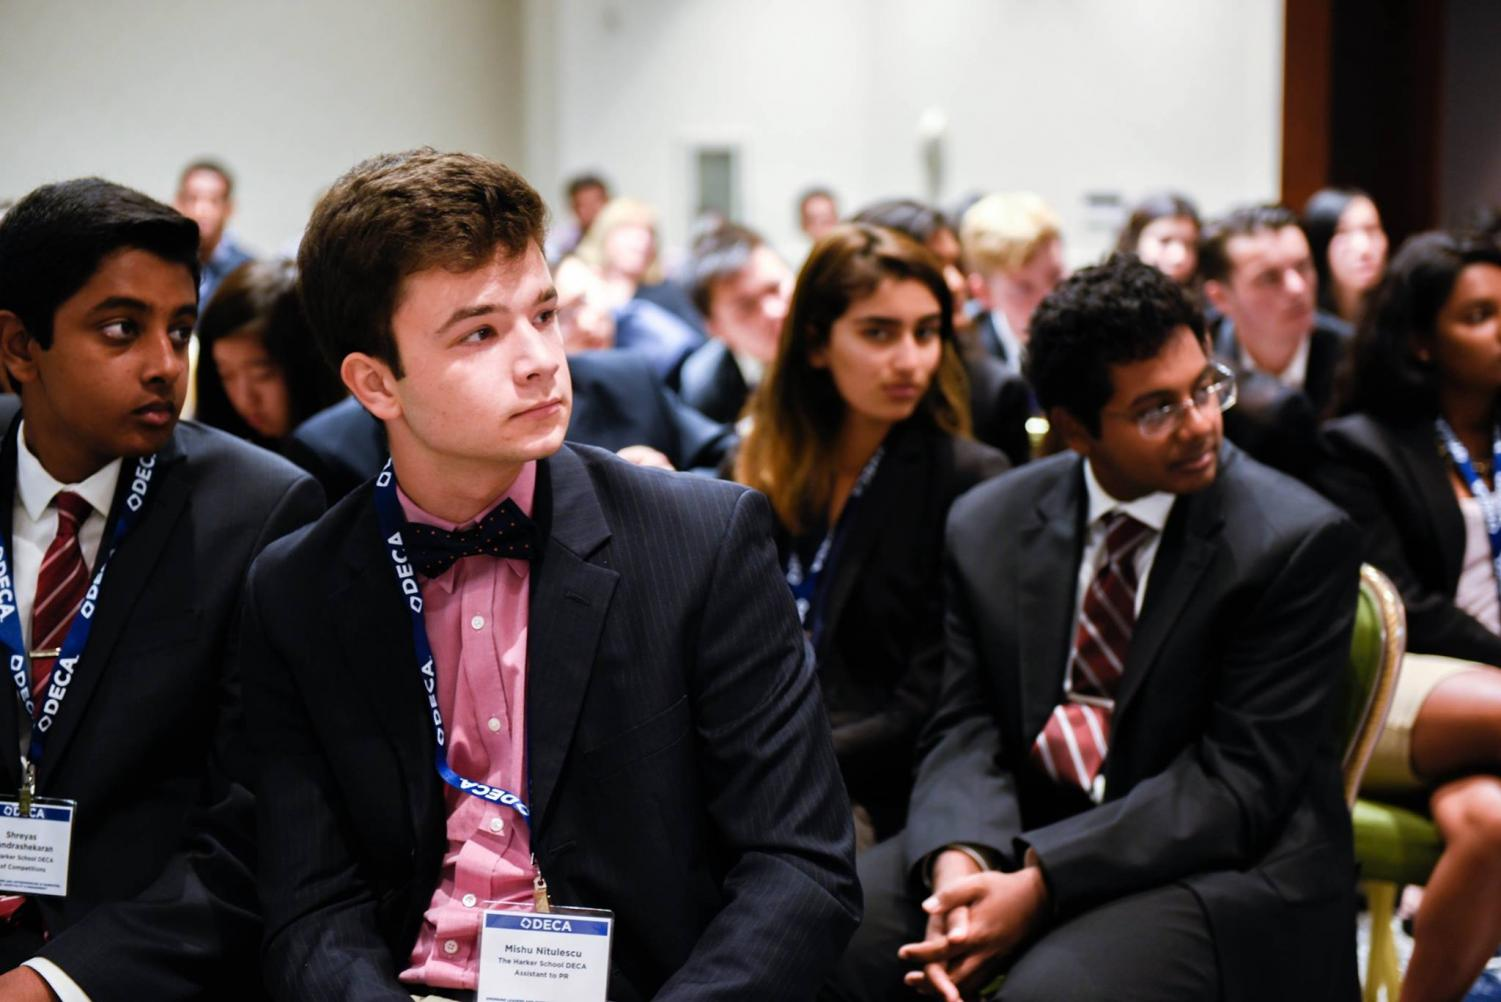 DECA students will travel to Arizona today to participate in a mock conference before the official competition season begins. This event will allow DECA members to participate in roleplays as well as practice written events.